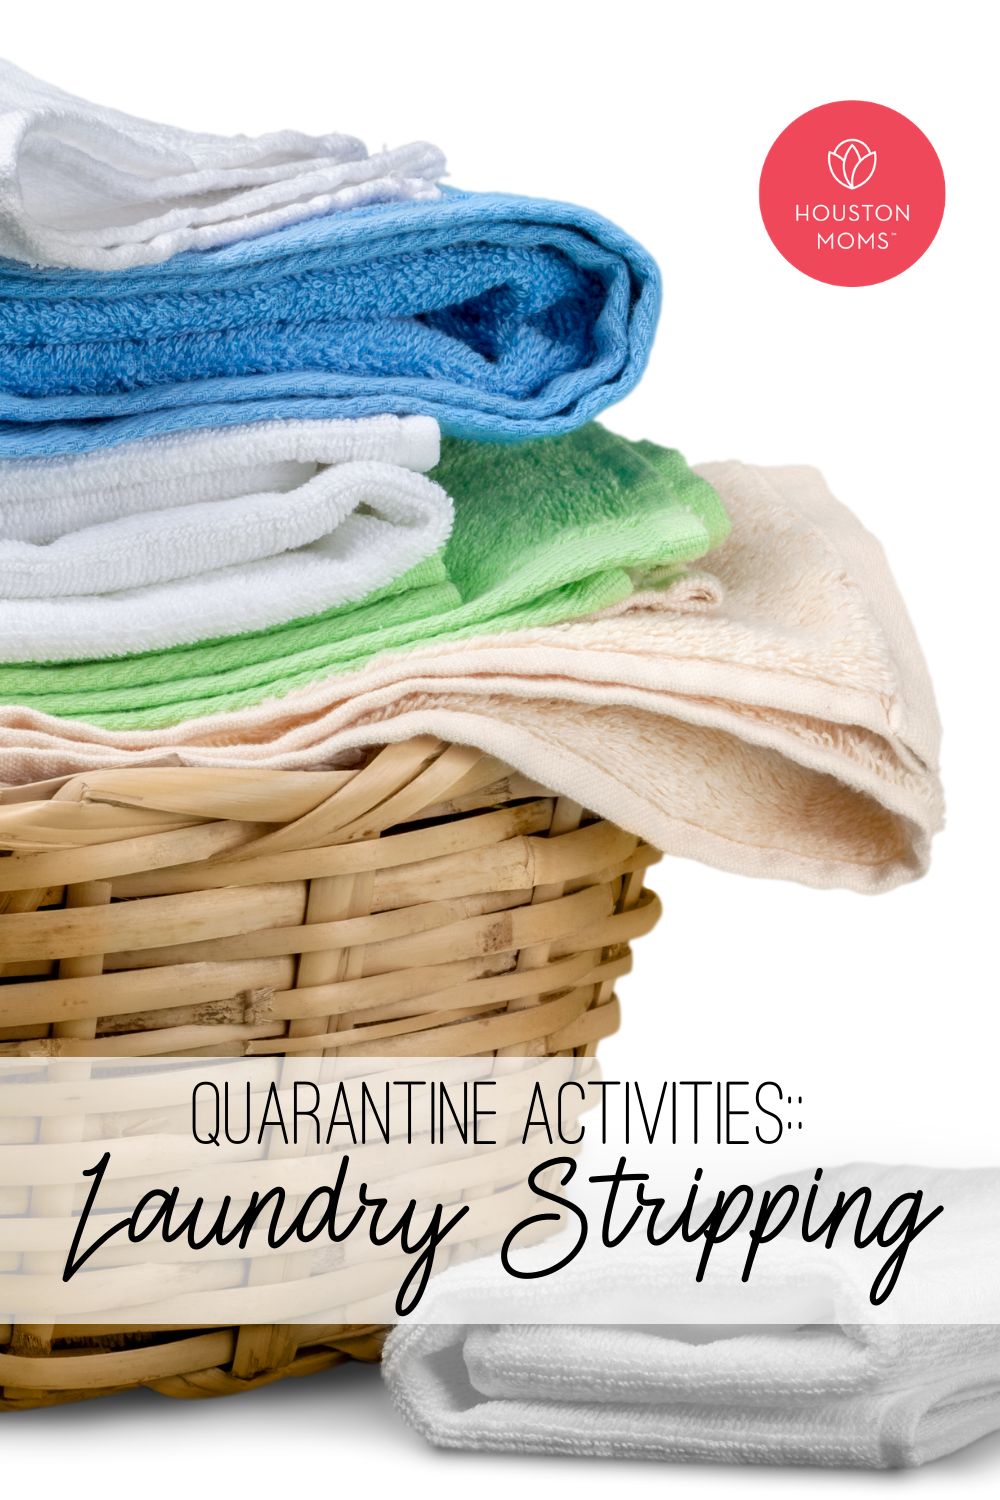 "Houston Moms ""Quarantine Activities:: Laundry Stripping"" #houstonmoms #houstonmomsblog #momsaroundhouston"